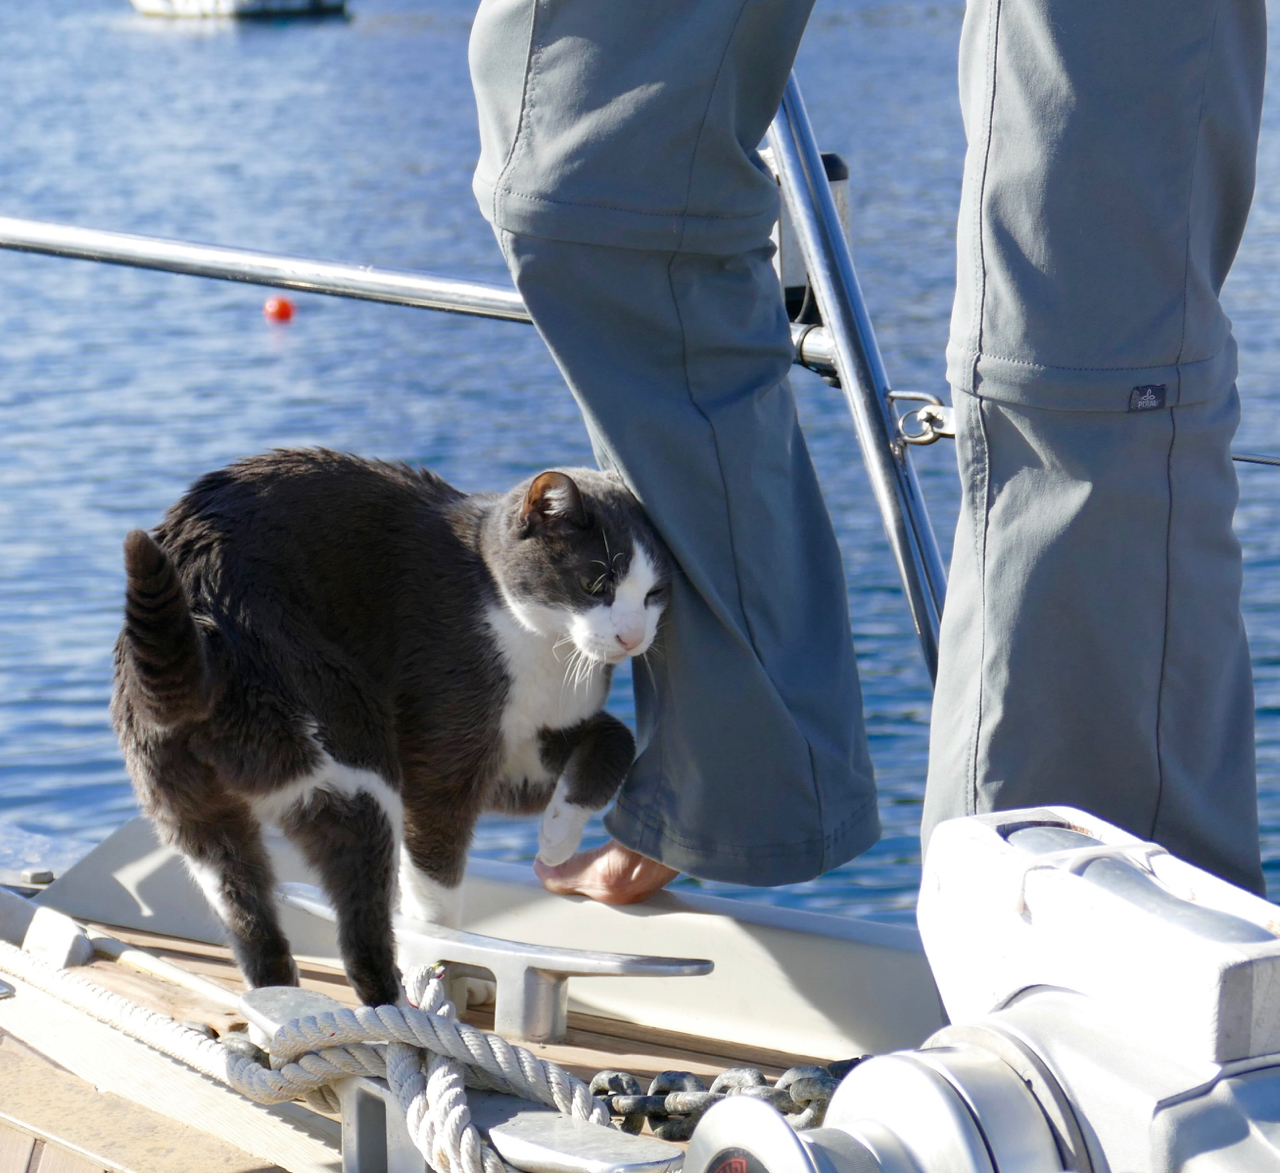 The Admiral doing foredeck work, and so of course, Sebastian was there with her. Águilas, Murcia,January 21, 2016. Leica Typ 114.